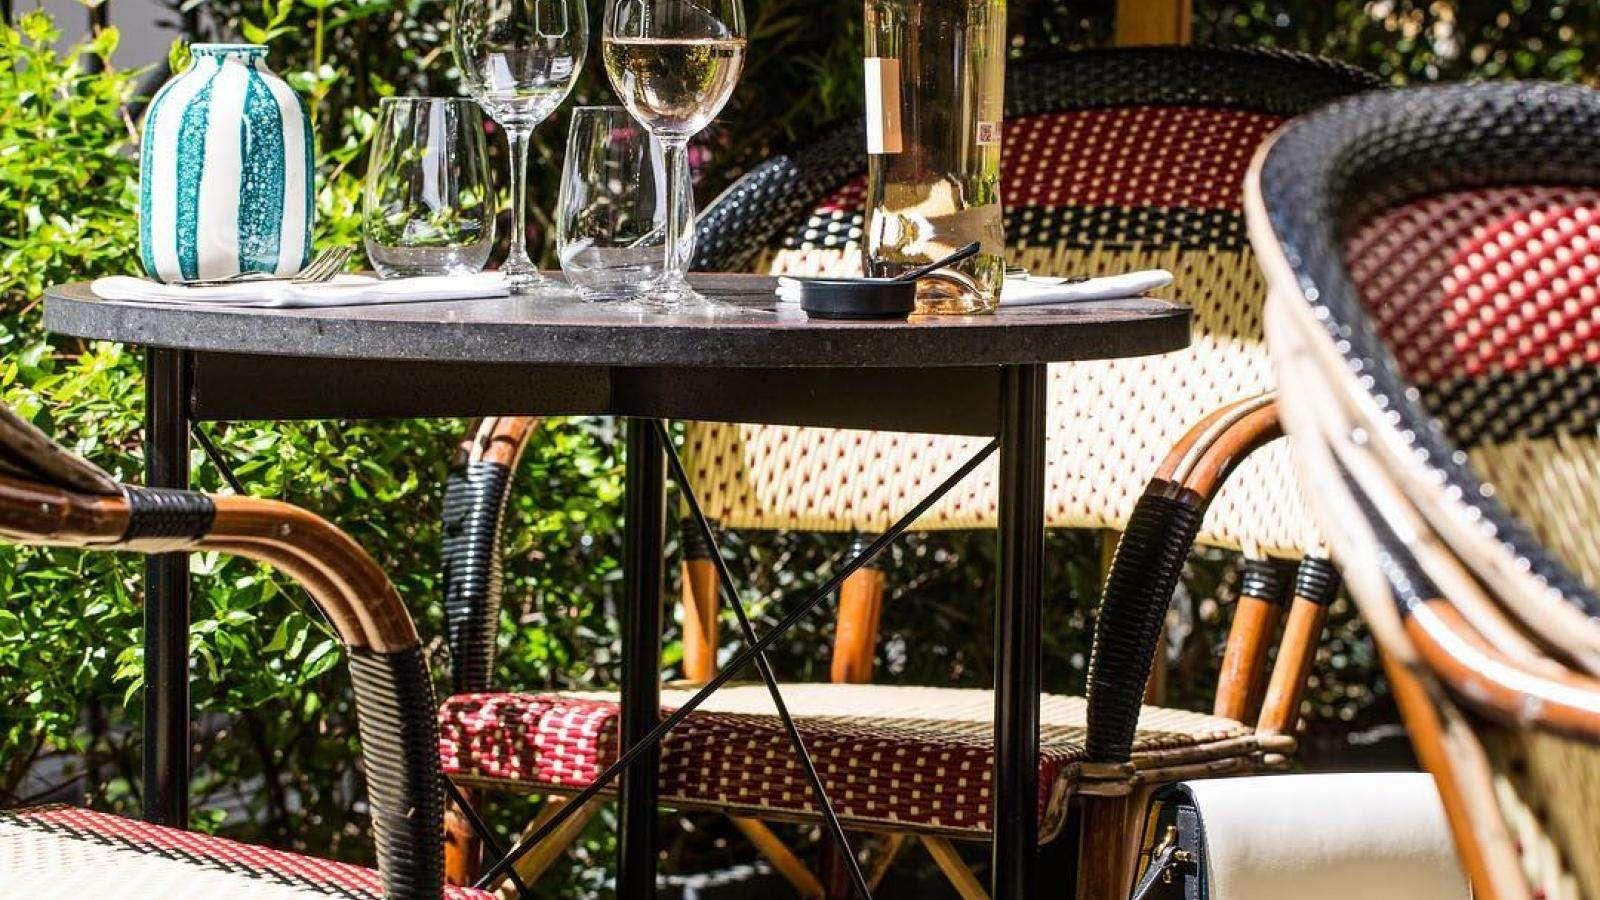 Enjoy the terrace at the Roch Hotel & Spa